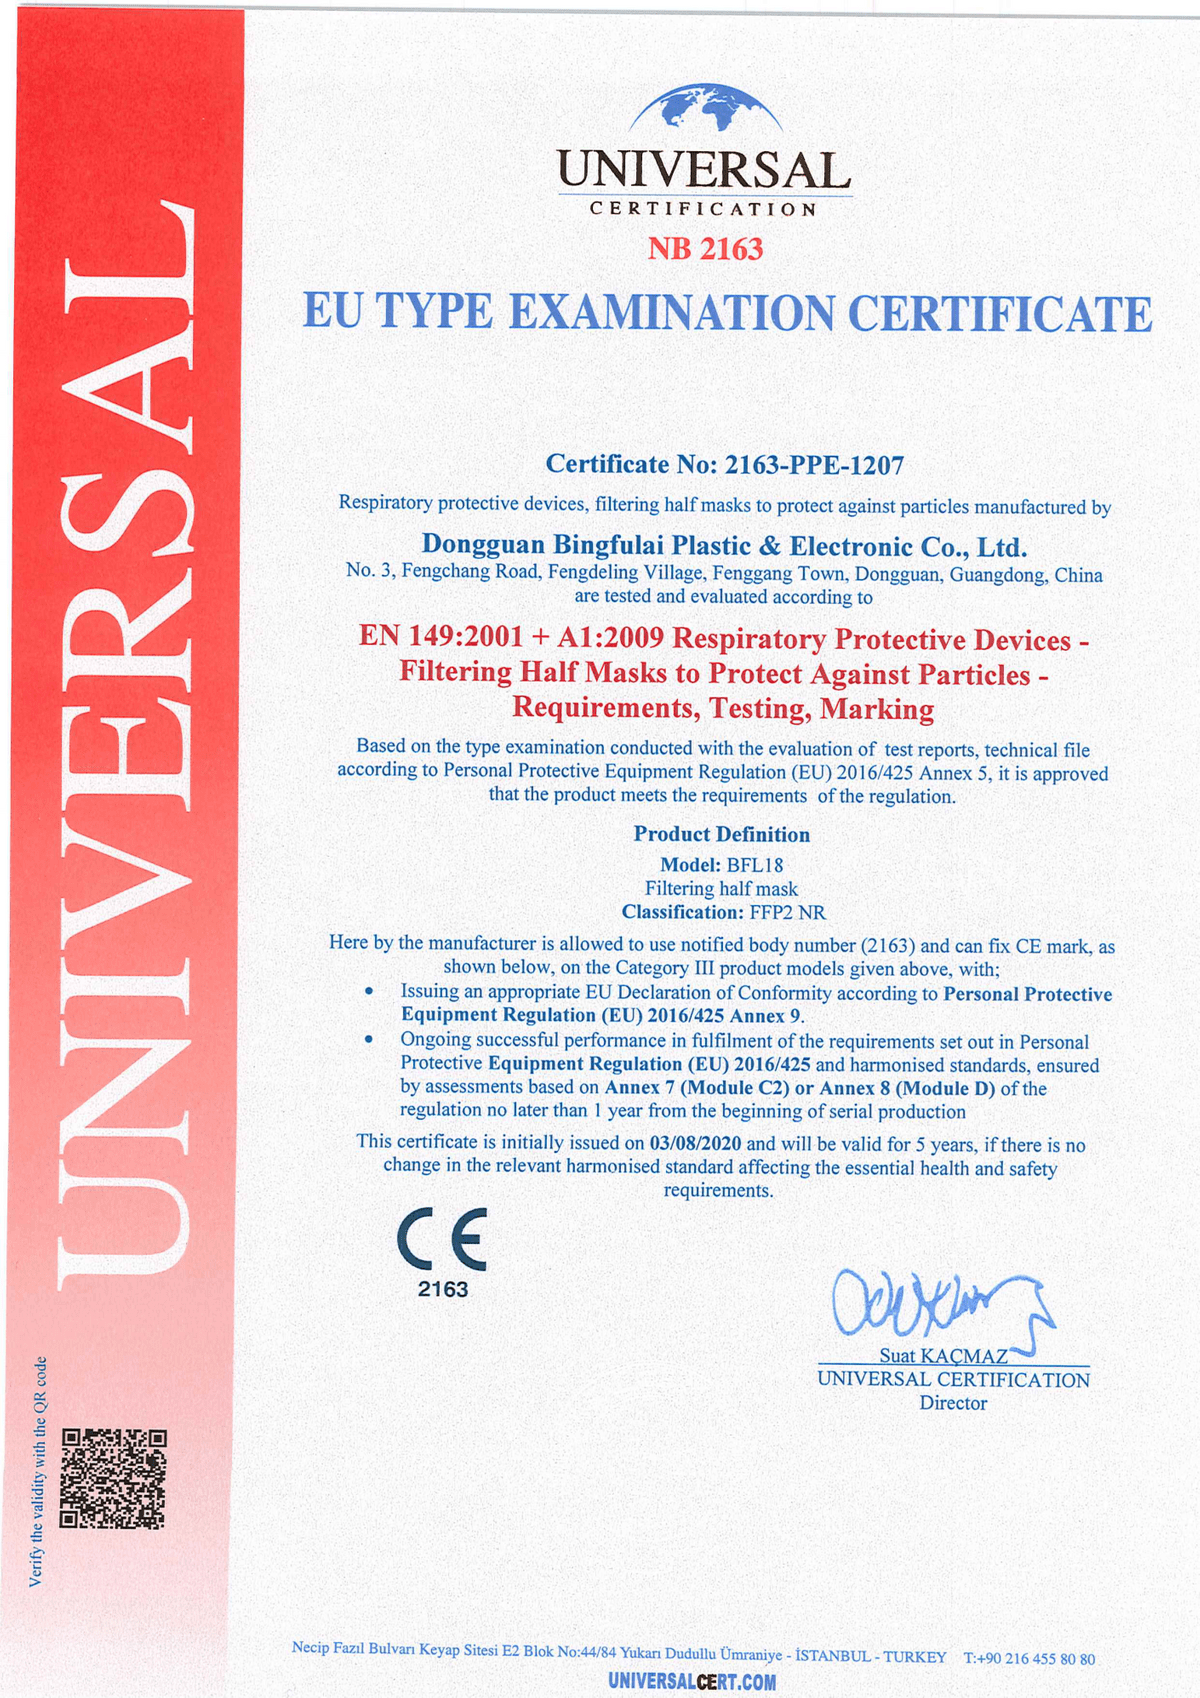 Click the photo ,link to the NB 2163's website to verify it.